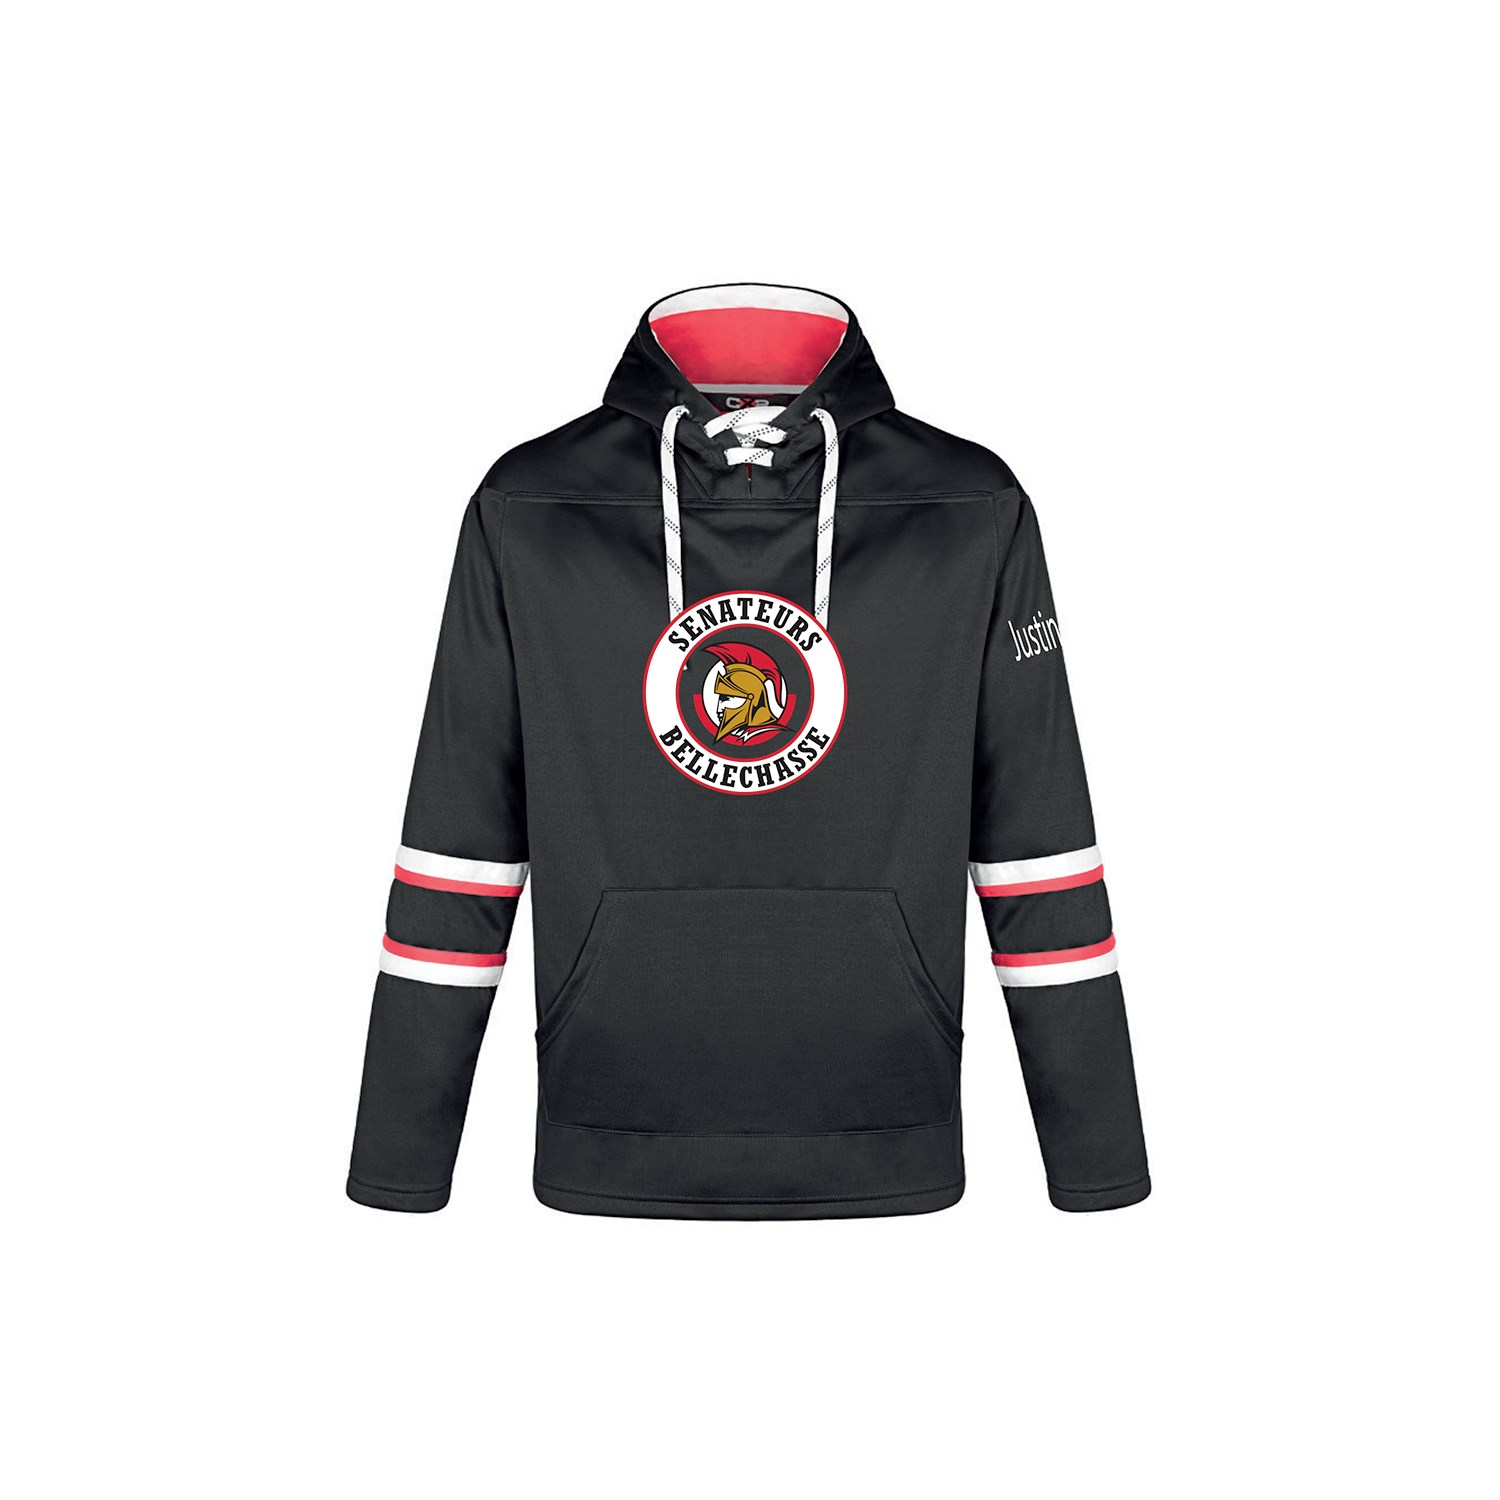 Chandail polyester Hockey à capuchon - Homme